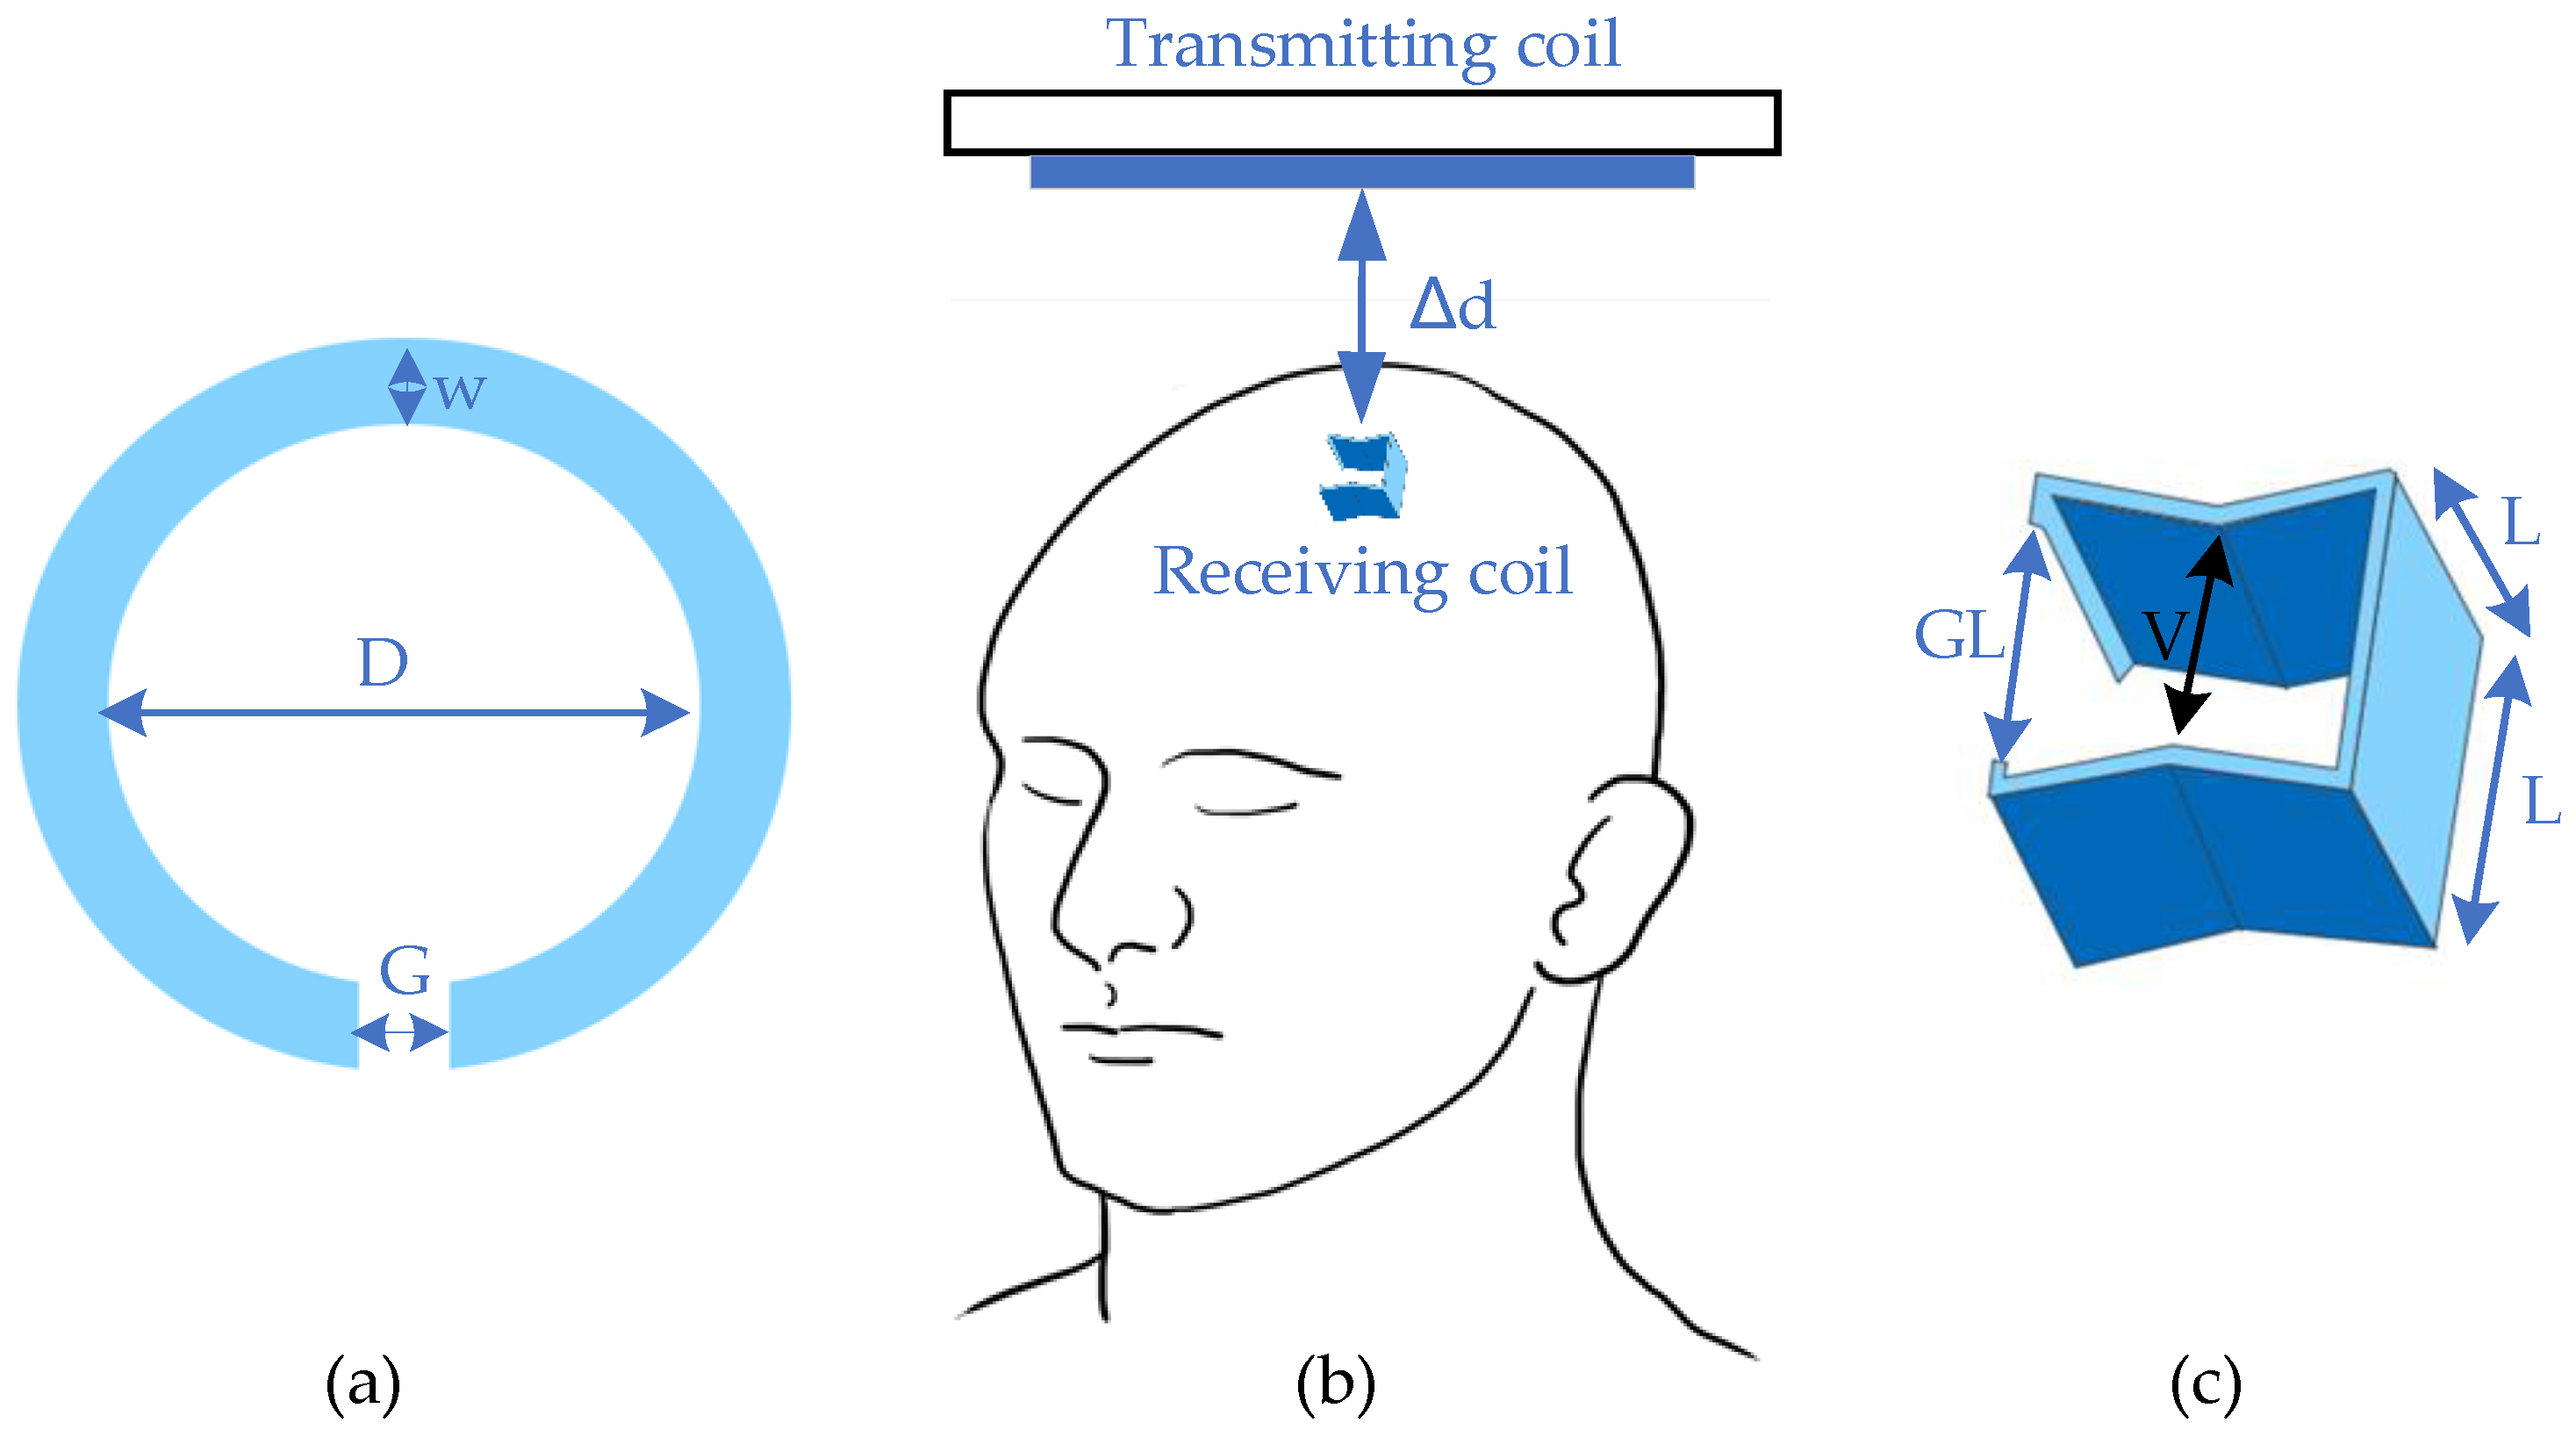 Energies Free Full Text Wireless Power Transfer For Implanted Medical Application A Review Html